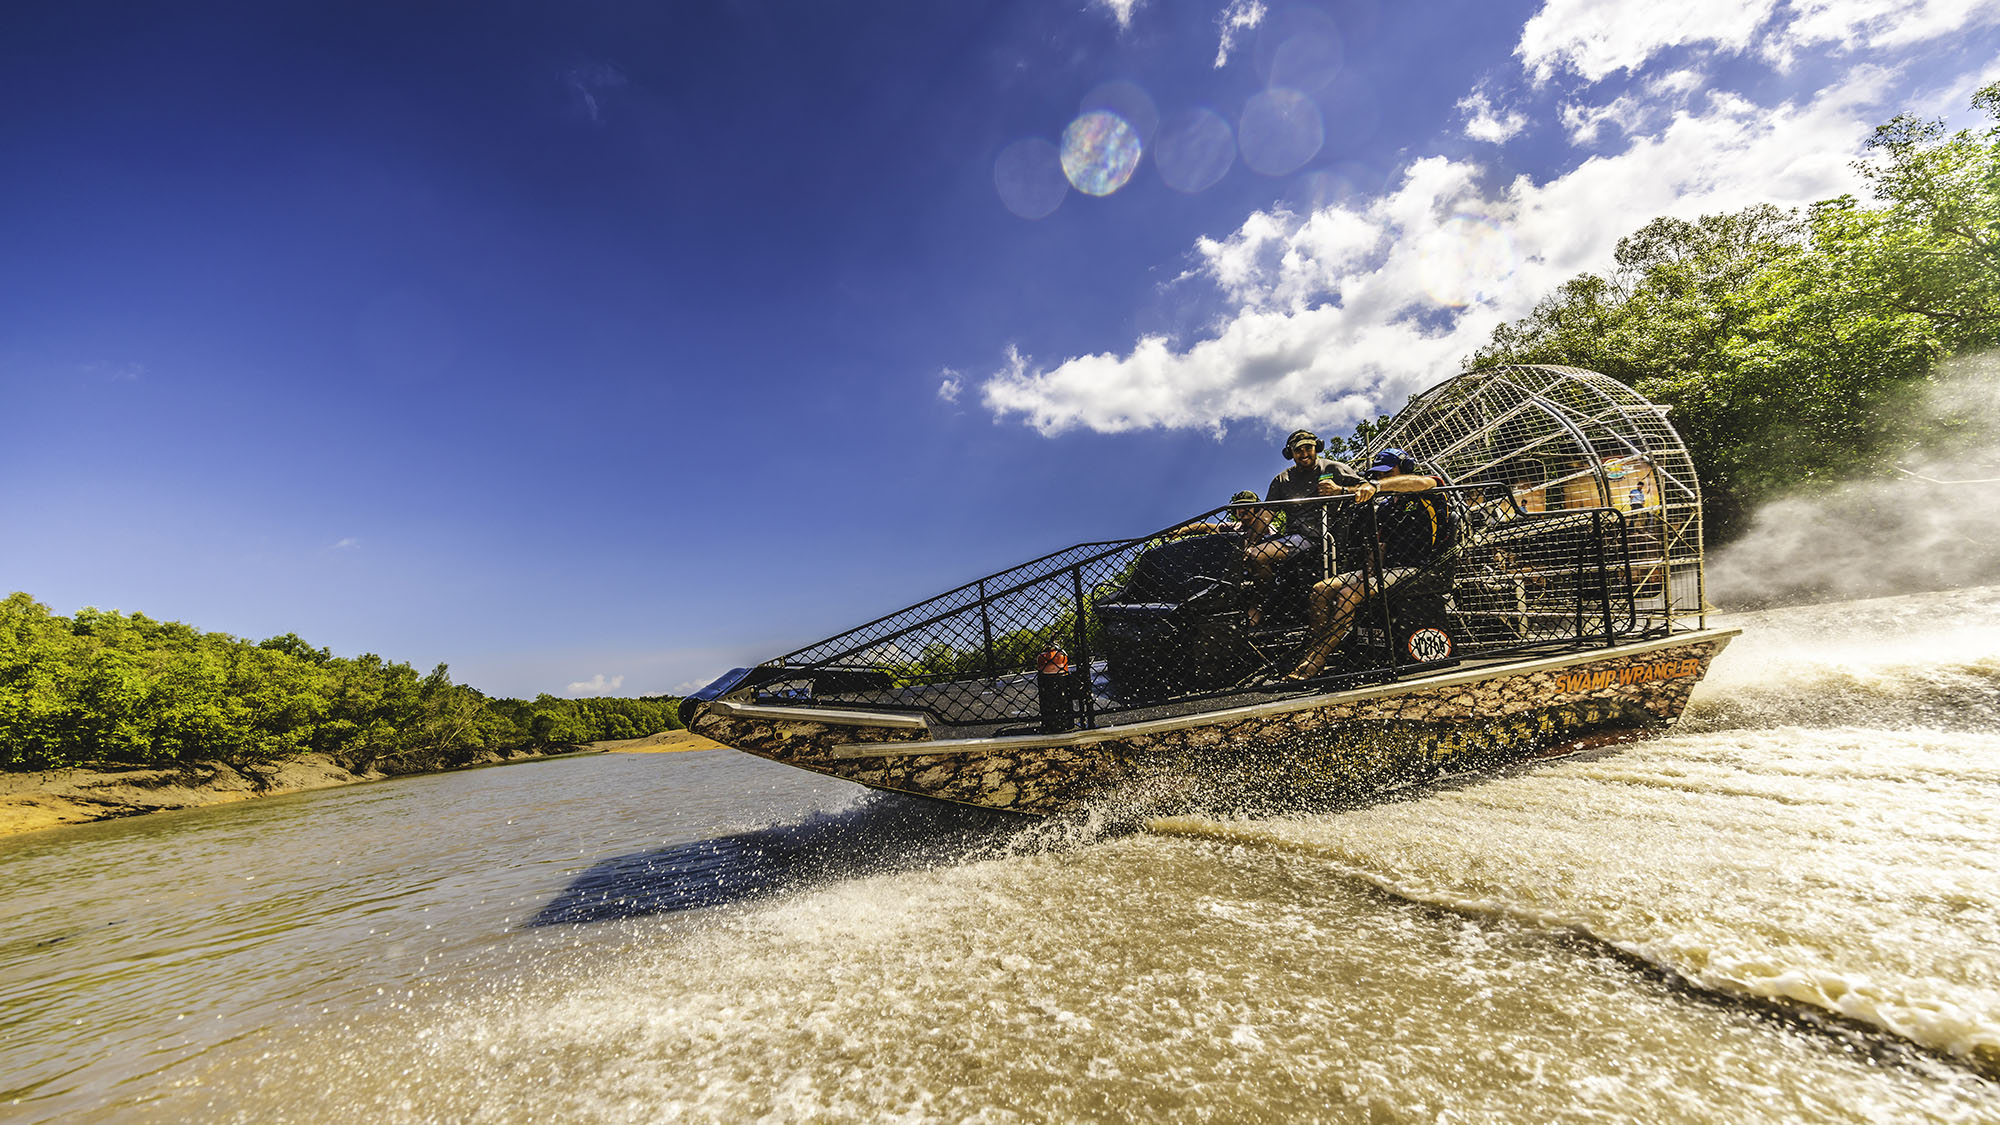 Darwin Adventure featuring Darwin Airboat Tours for 2 people